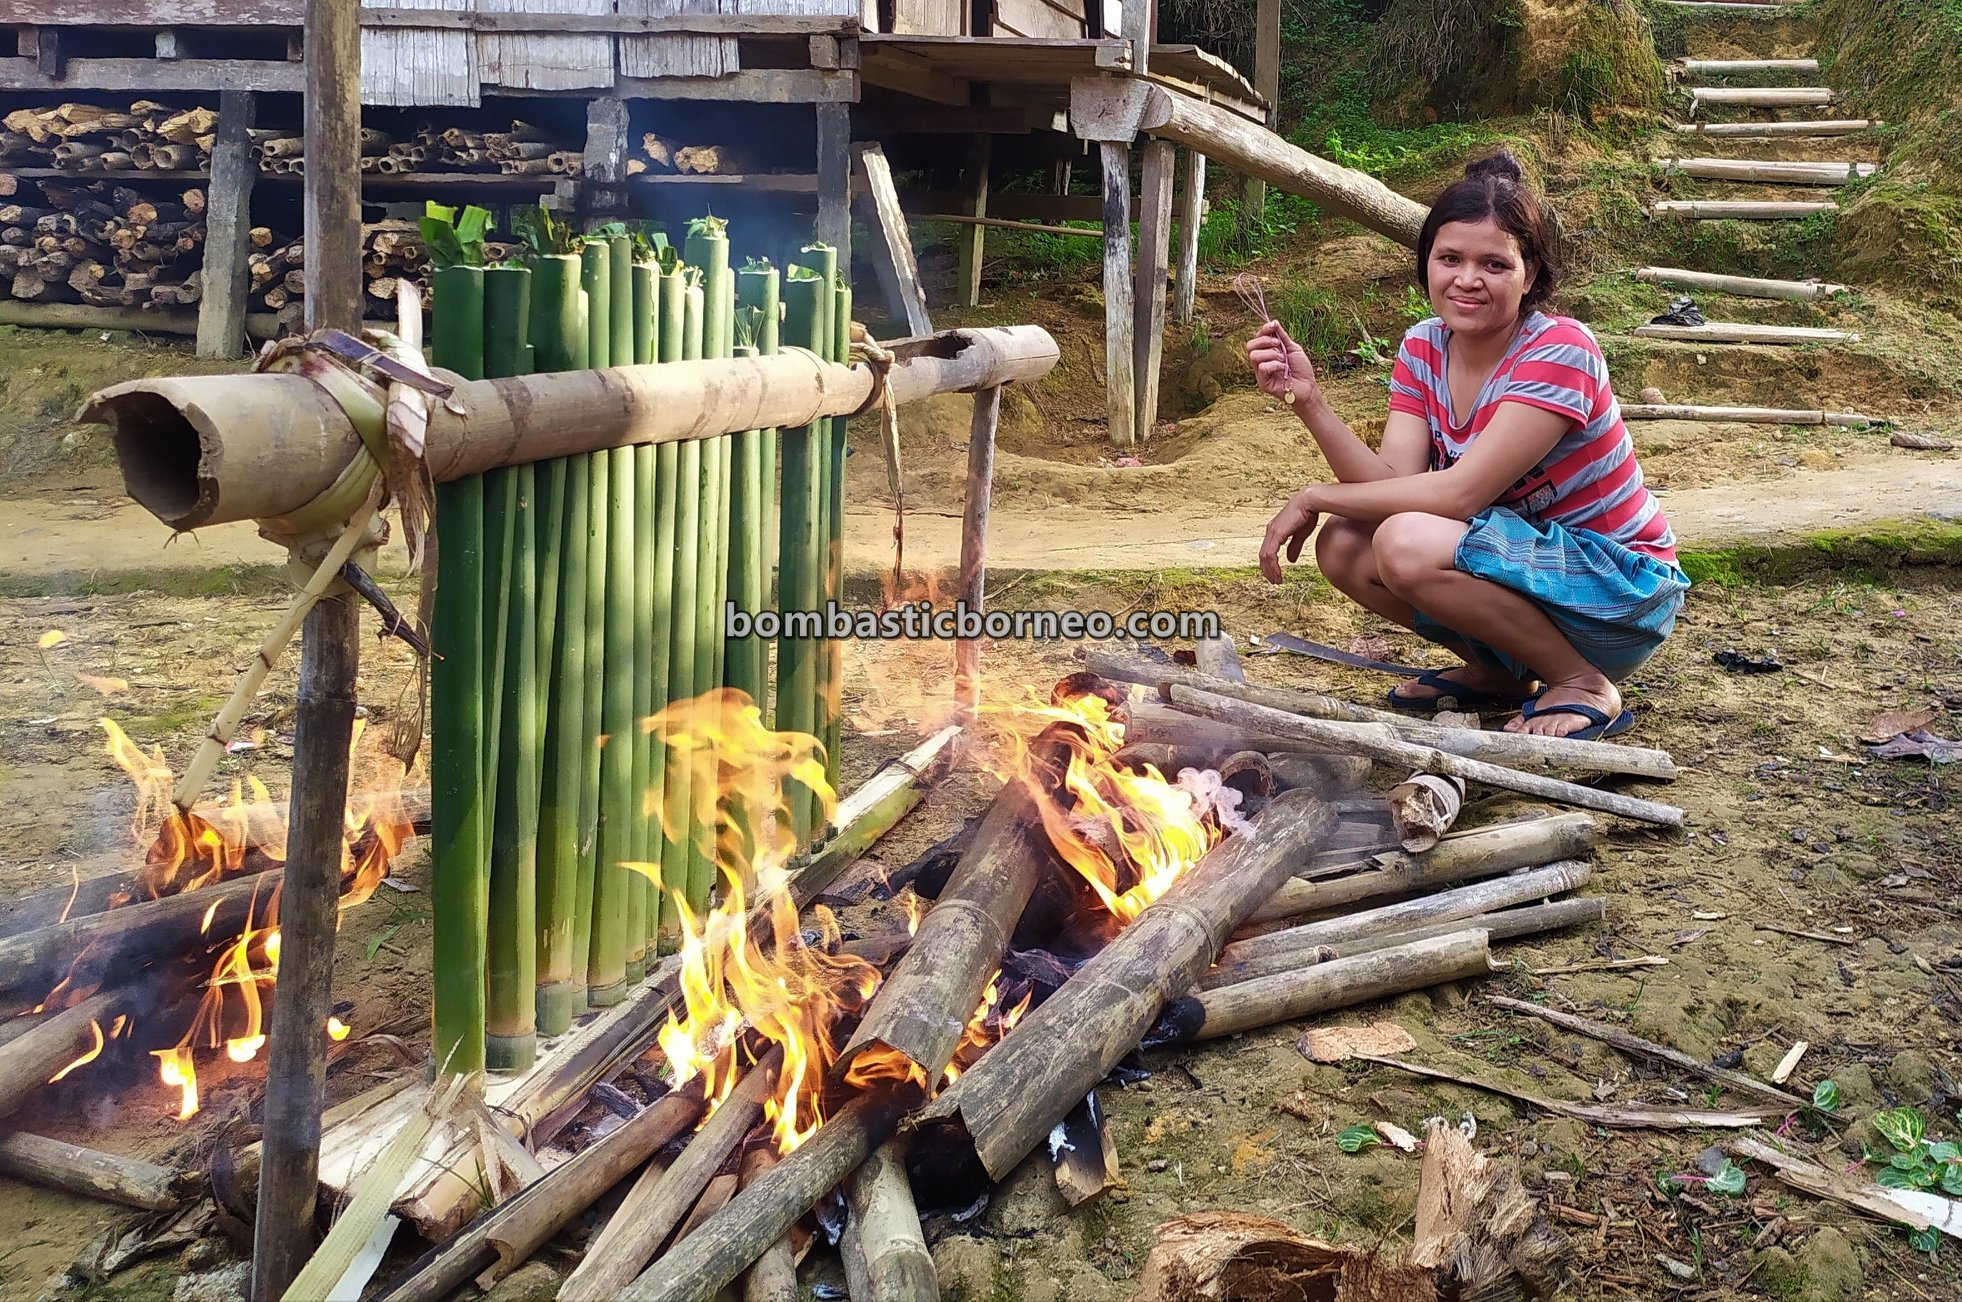 bamboo sticky rice, Sungkung Medeng, authentic, traditional, exploration, Bengkayang, Indonesia, West Kalimantan, Ethnic, native, tribe, village, Gawai harvest festival, Tourist attraction, Borneo